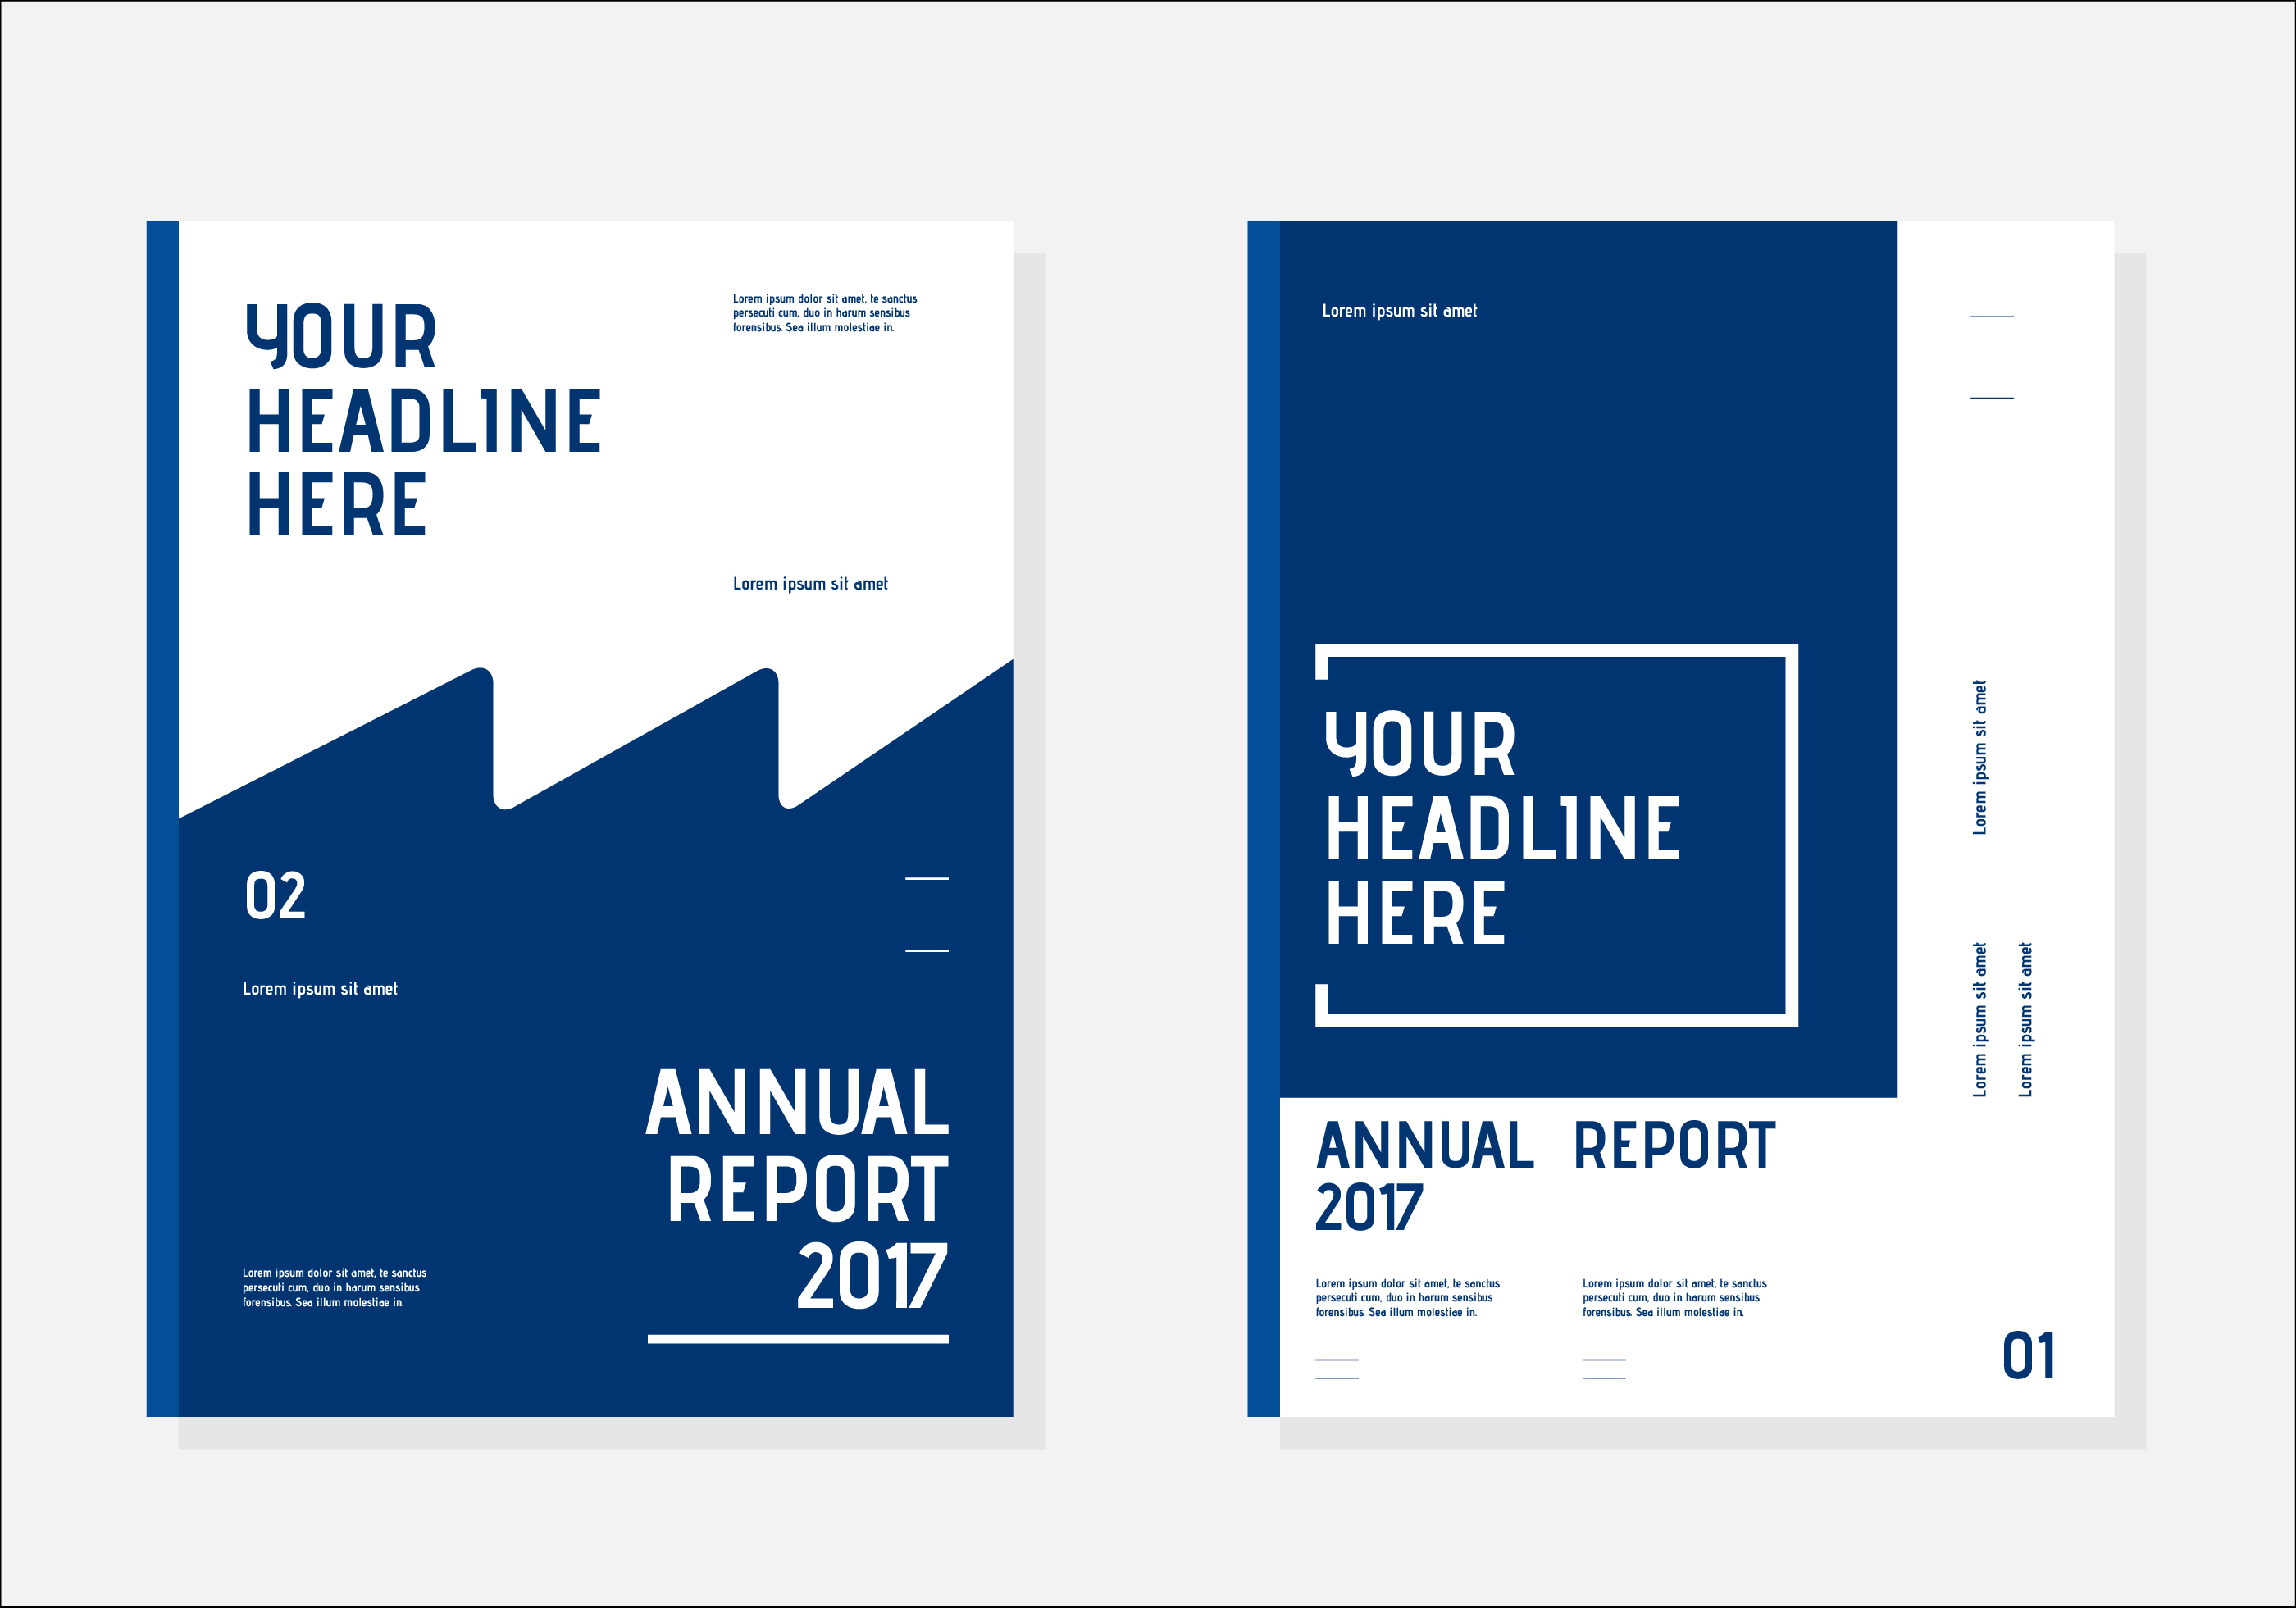 Book Cover Vector : Annual report book cover download free vector art stock